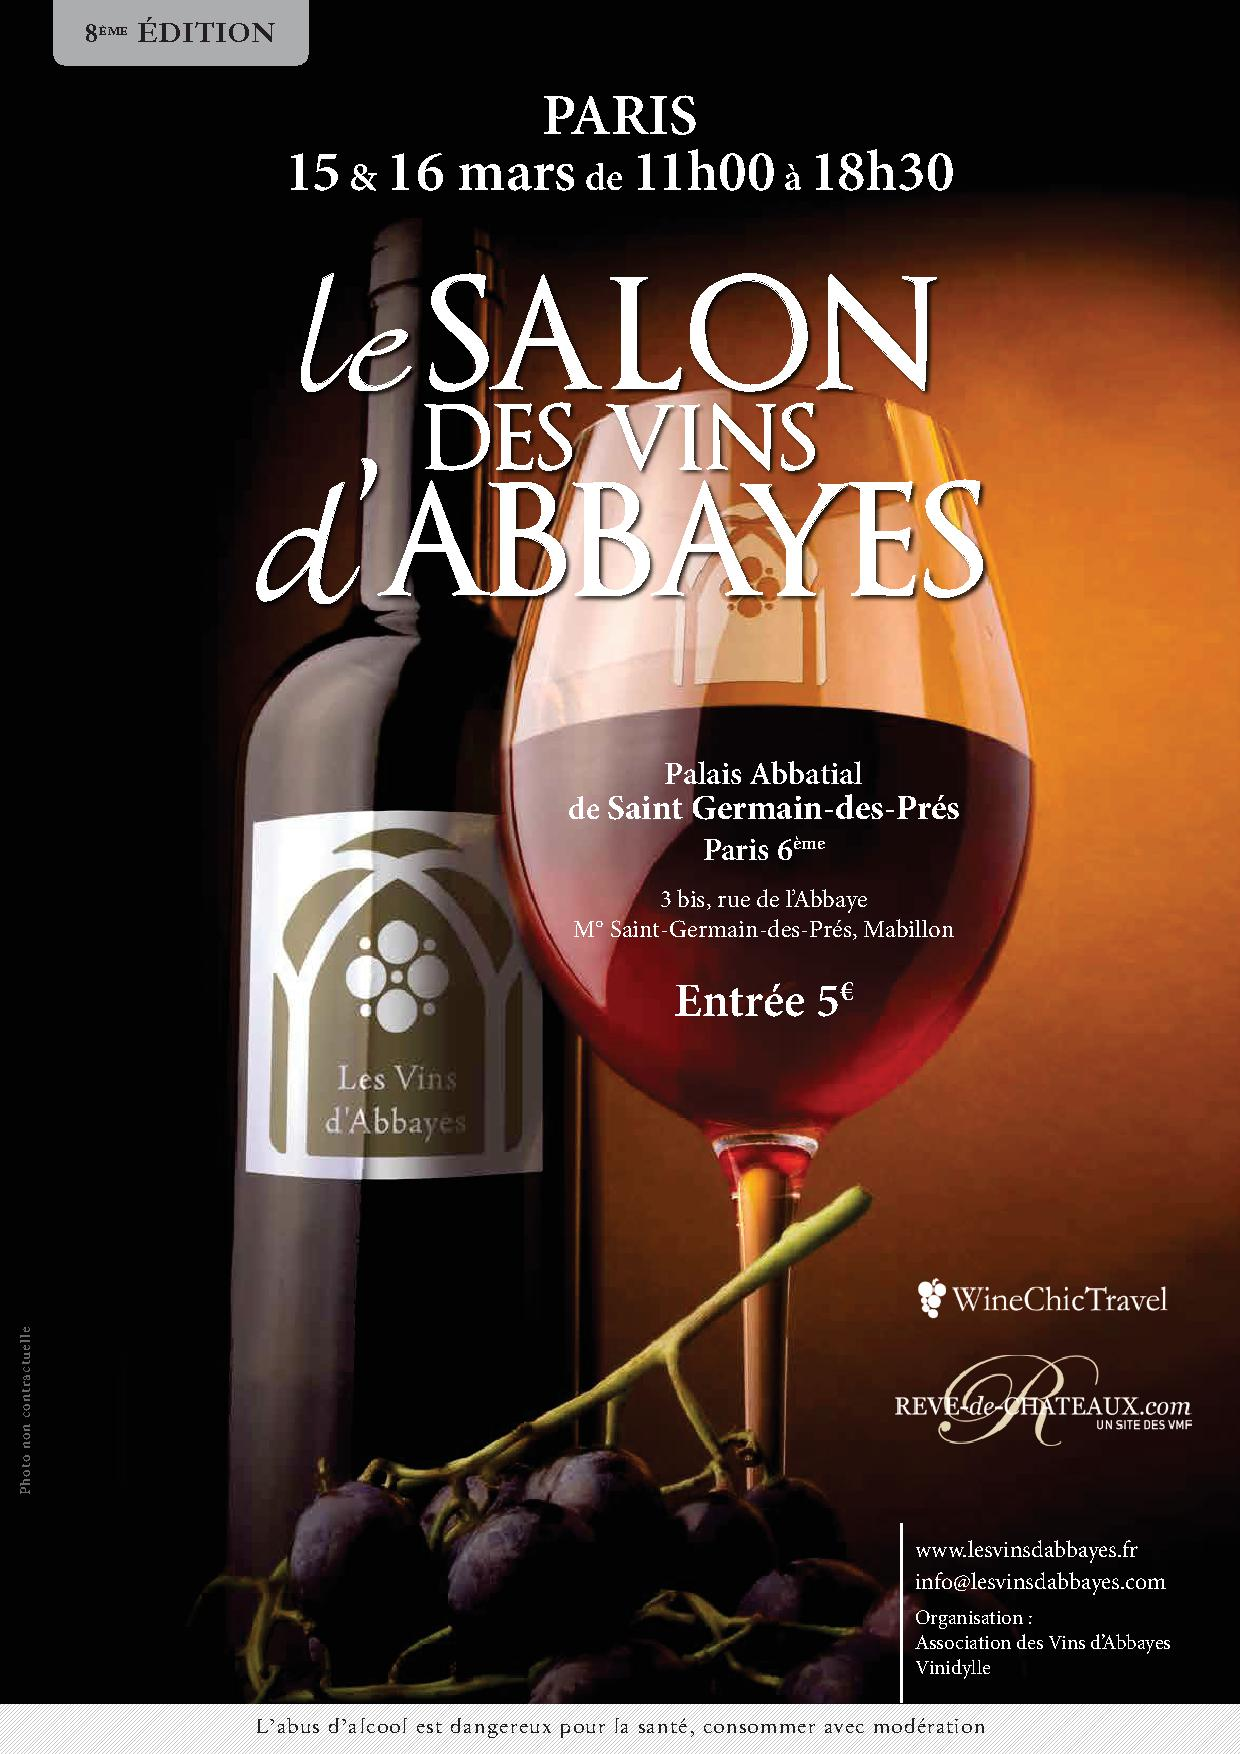 Salon des vins d 39 abbayes 8 me dition paris paris 6 me for Salon des vins paris